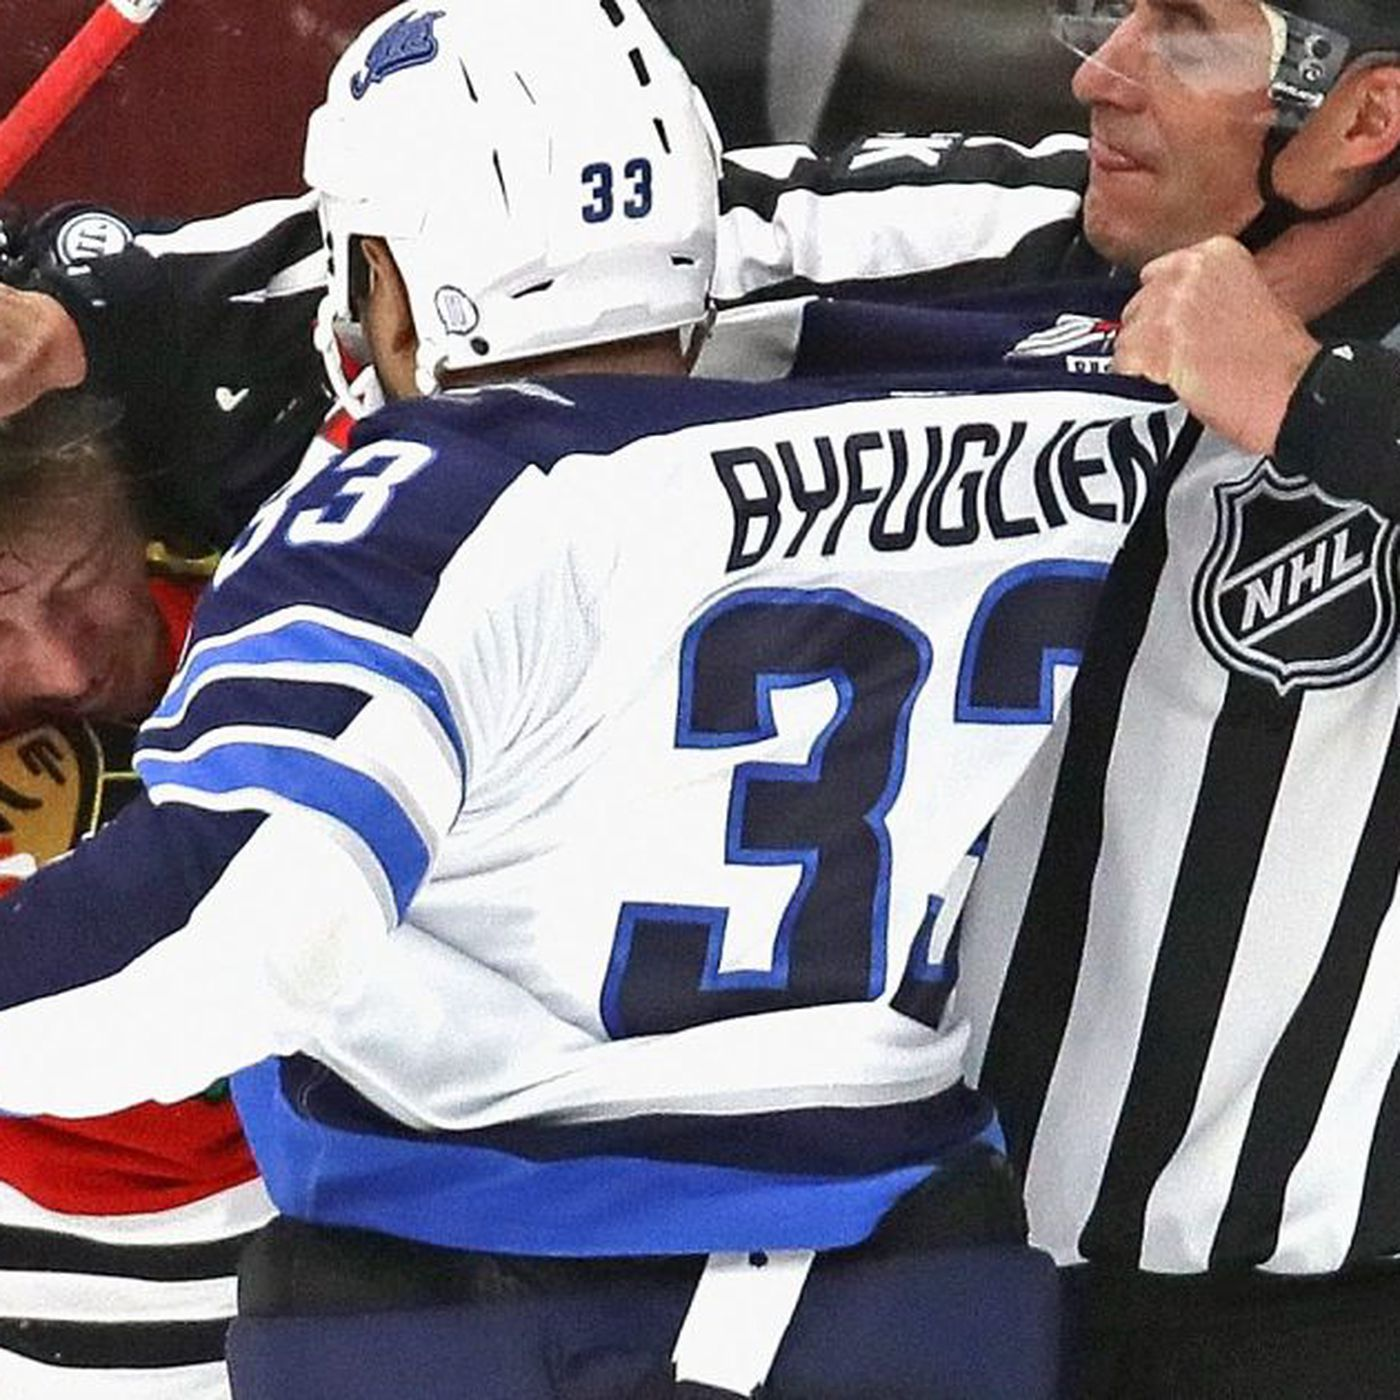 sports shoes 75afc 73d3c Blackhawks wince at fight between Dustin Byfuglien, Drake ...